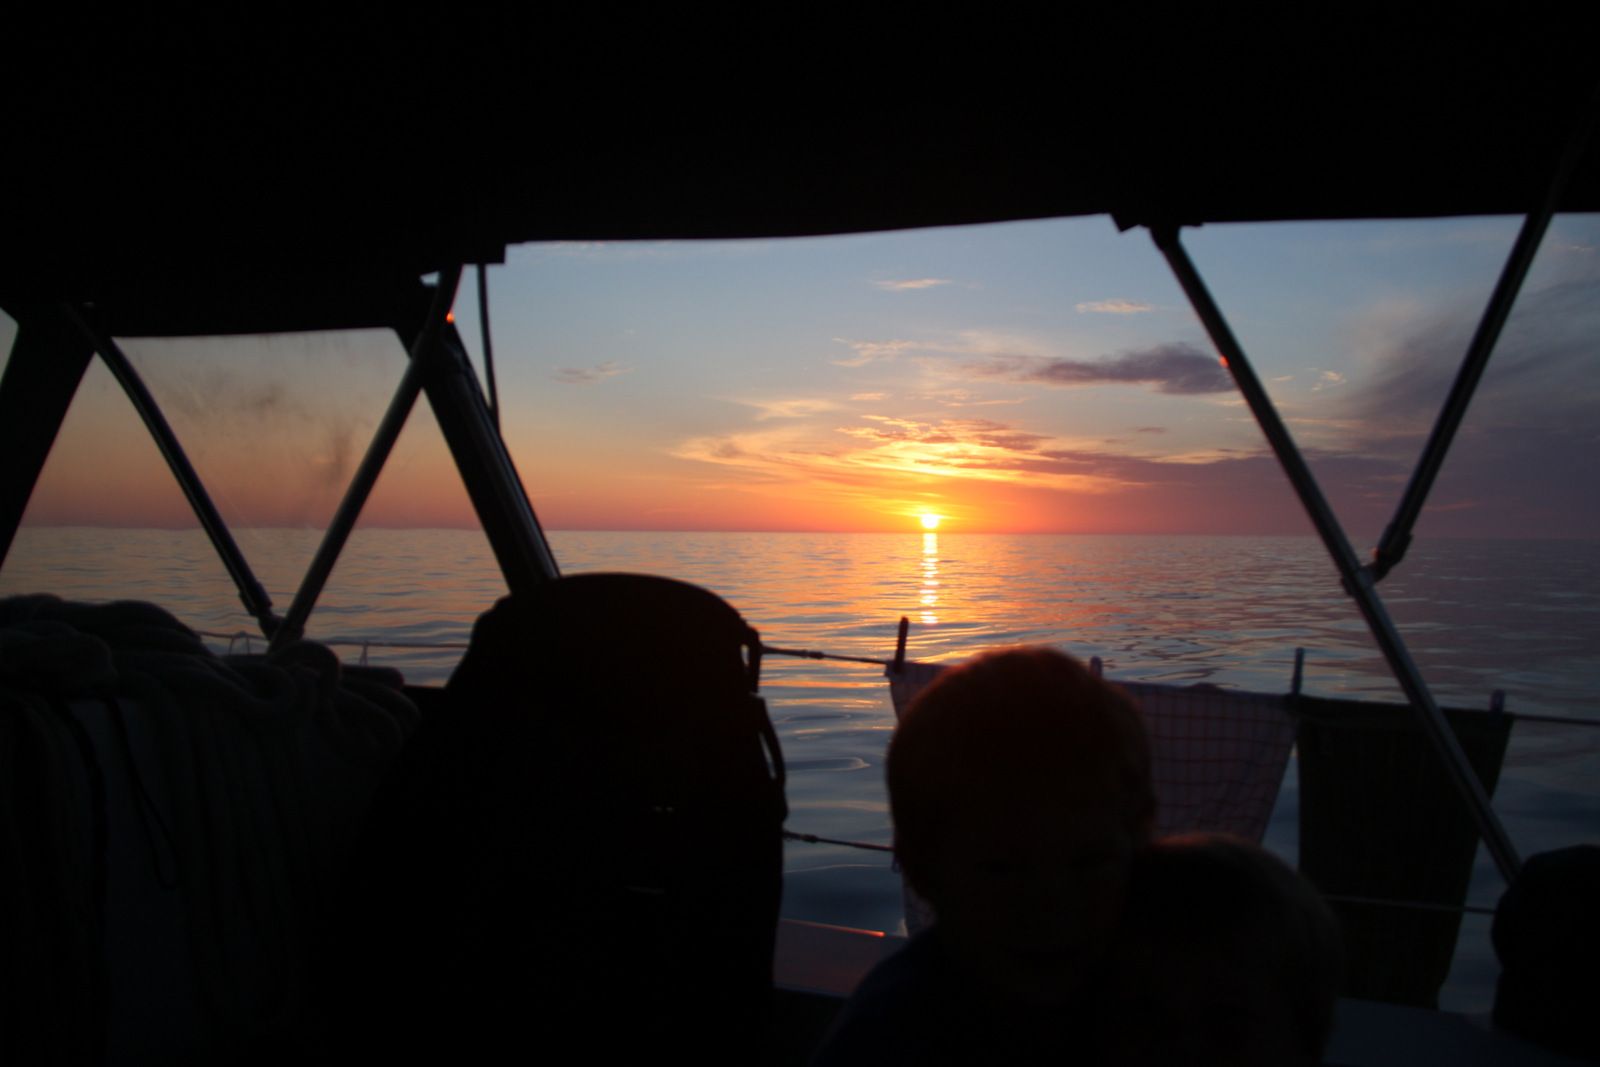 Sun setting on our first night time passage